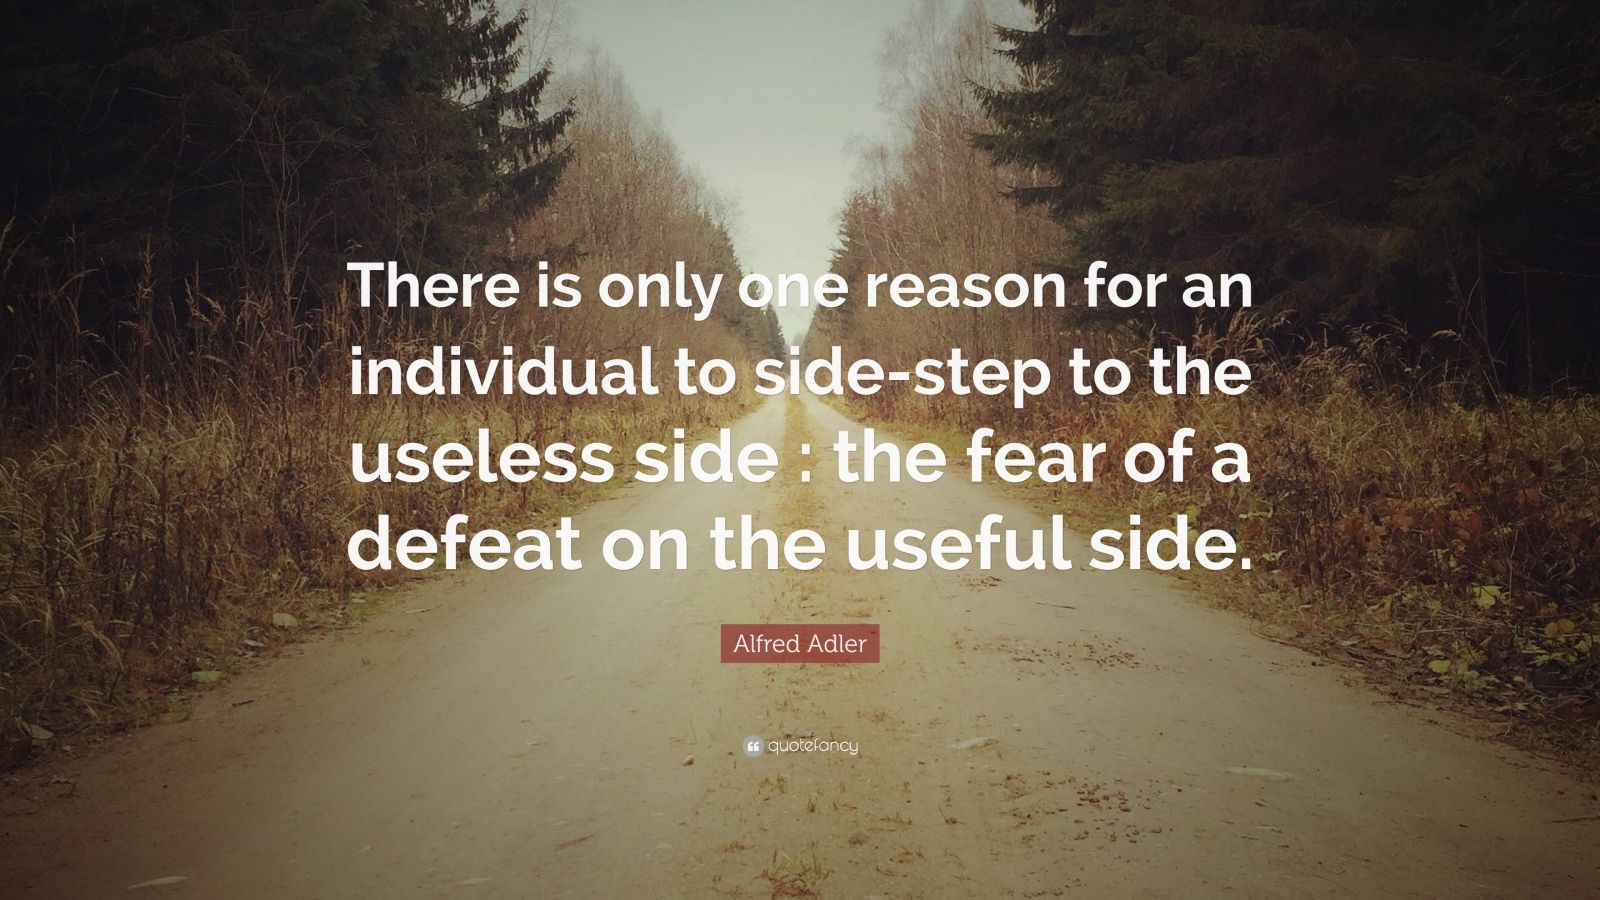 """Alfred Adler Quote: """"There is only one reason for an individual to side-step to the useless side : the fear of a defeat on the useful side."""""""